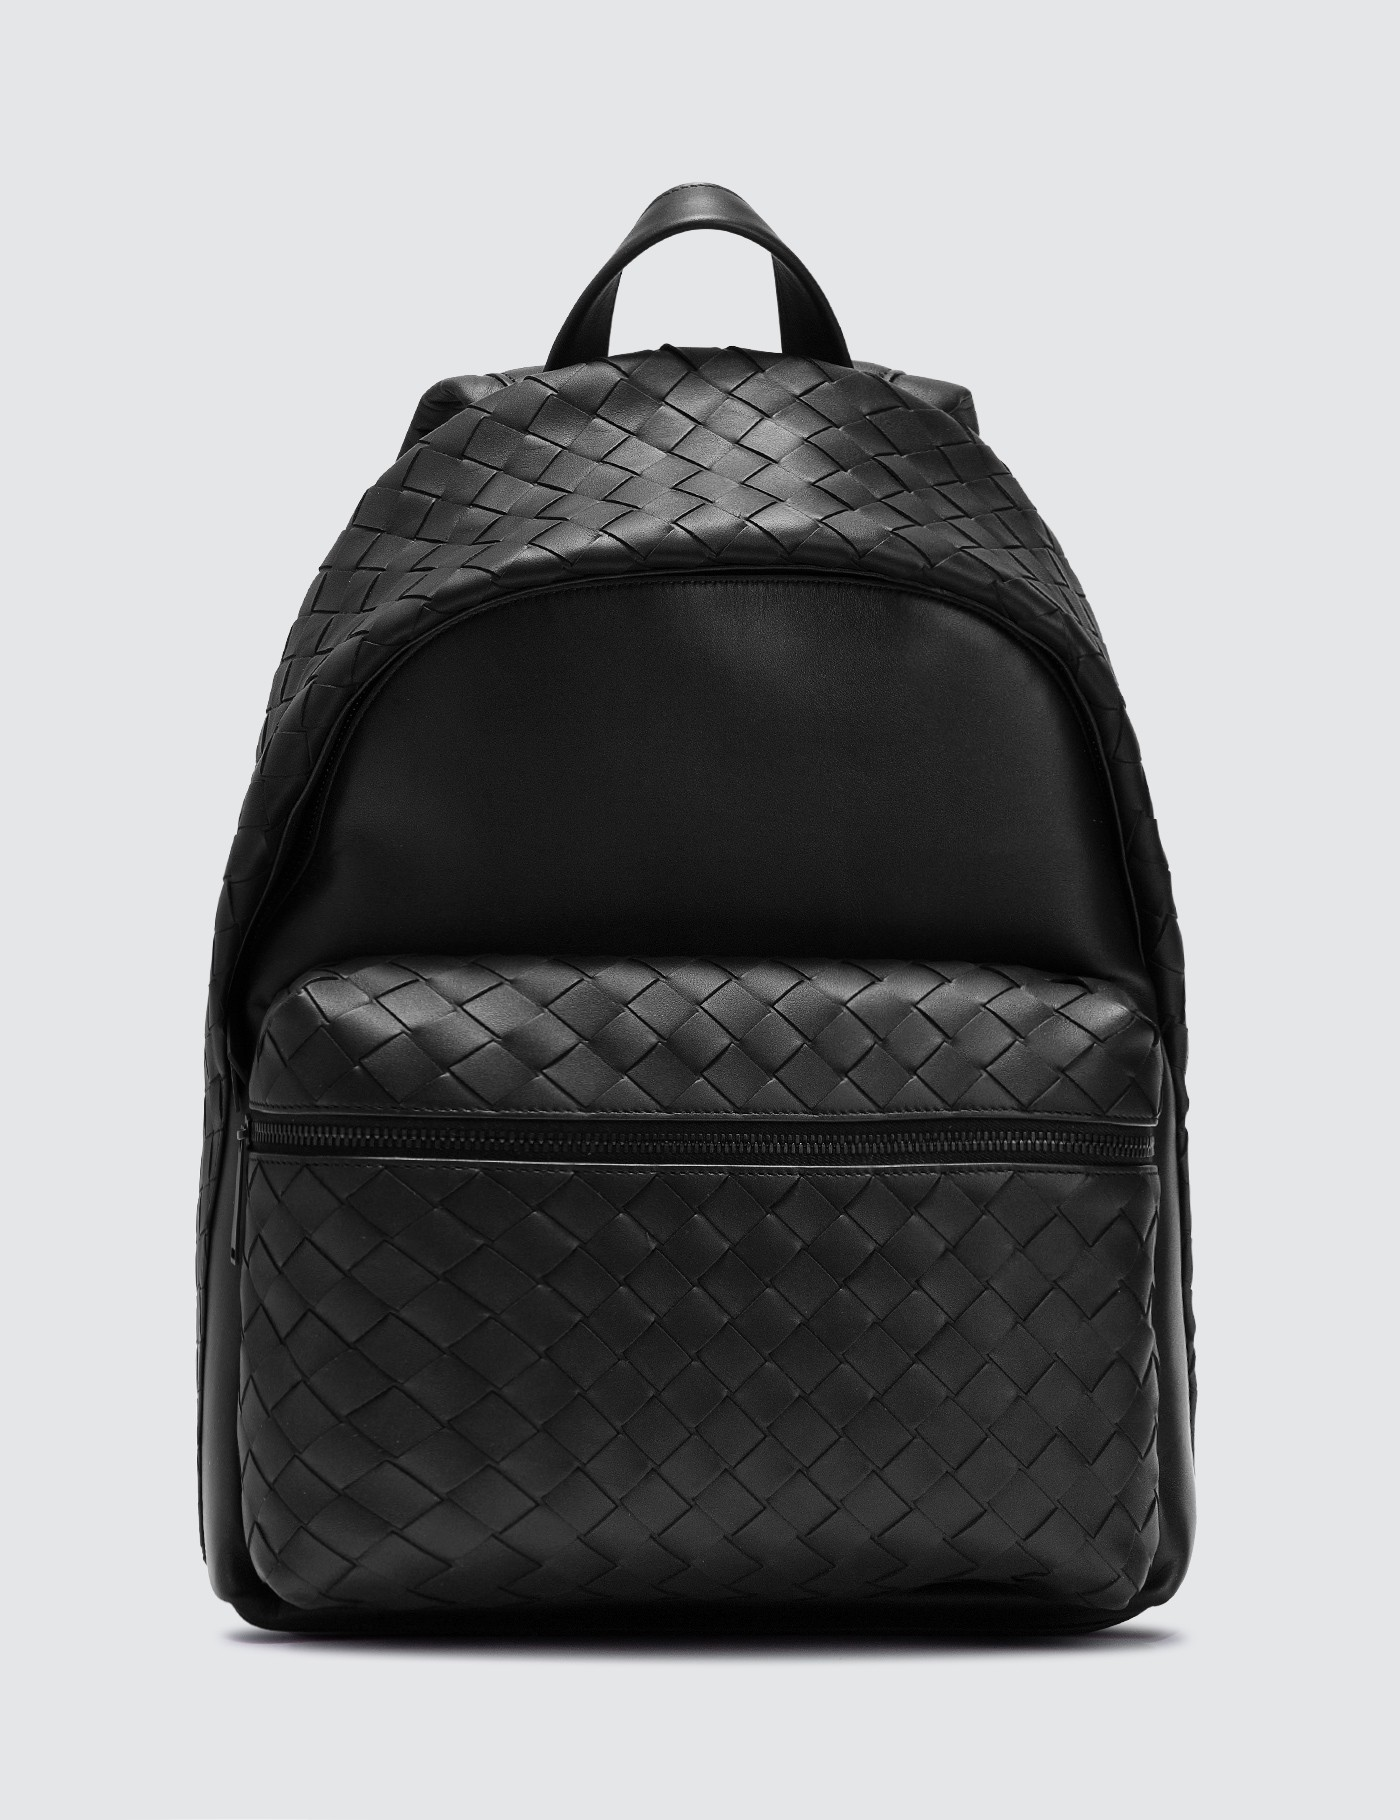 Bottega Veneta Intreciatto Backpack